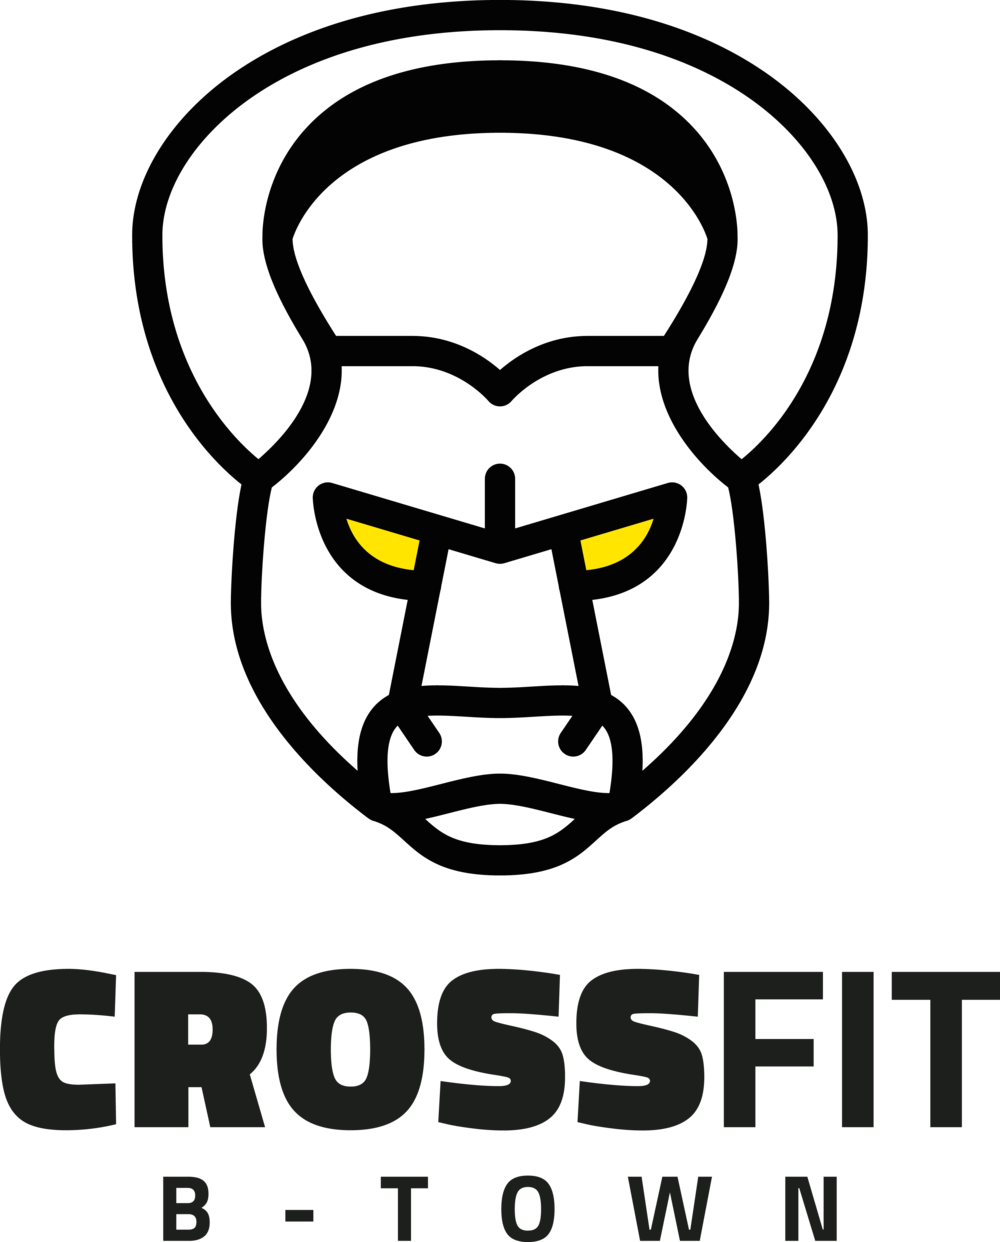 Dumbbell clipart barbell crossfit. B town